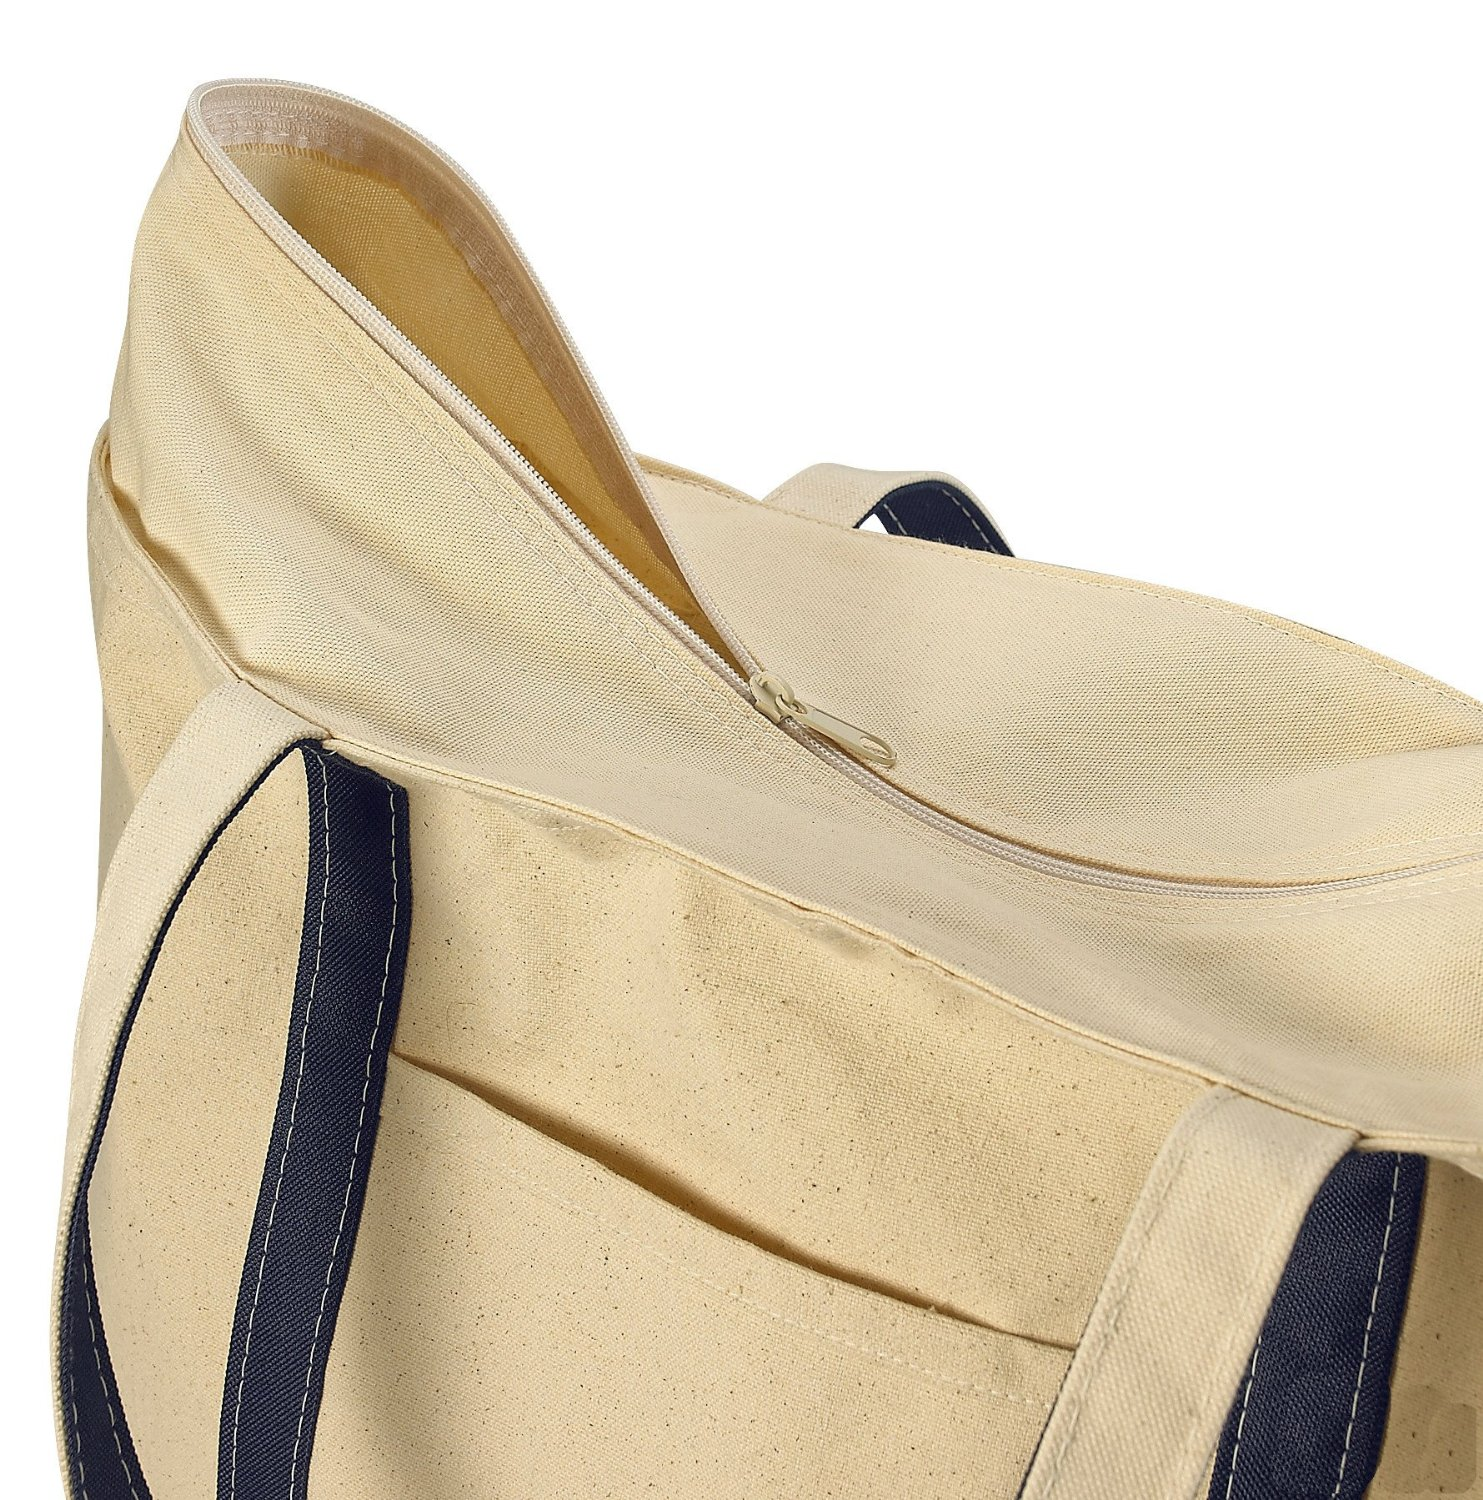 Zippered Canvas Tote Beach Bag, Navy Blue